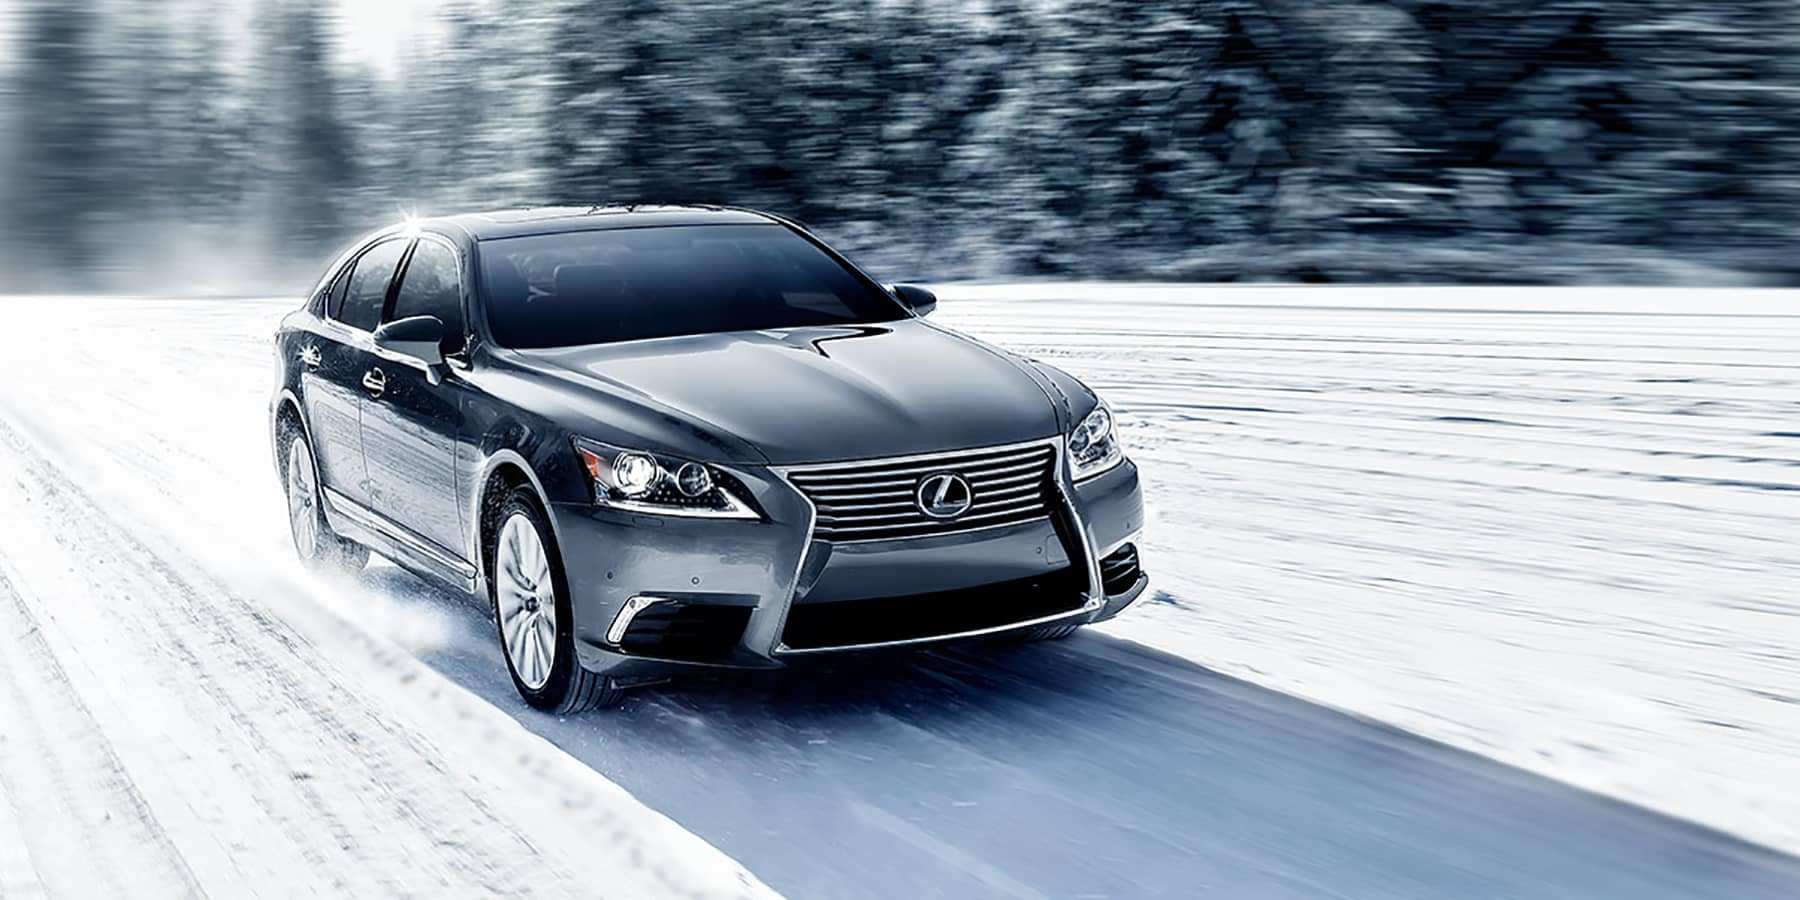 Thompson Lexus Willow Grove >> Shop December to Remember Offers in Willow Grove